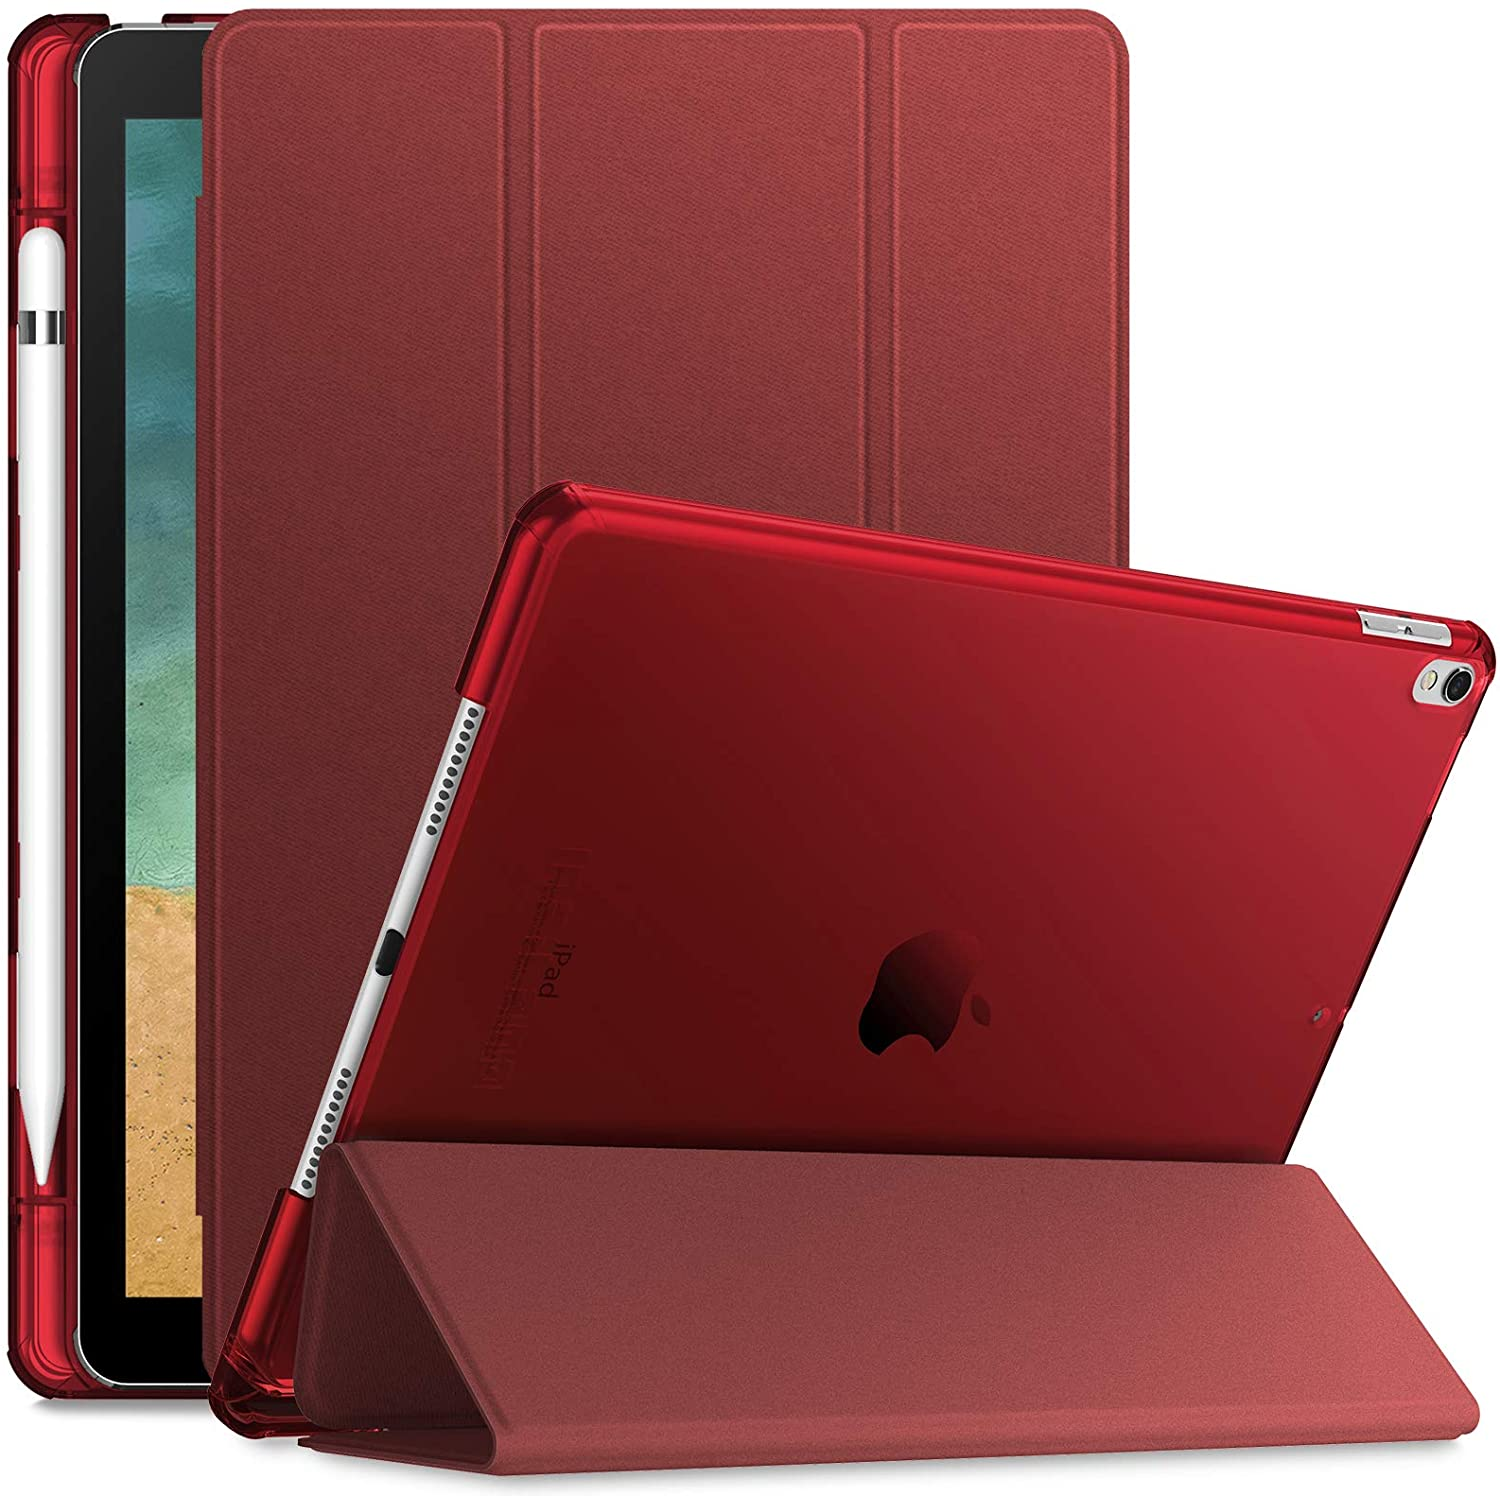 INFILAND Case for iPad Air 3rd Generation 2019 / iPad Pro 10.5 2017, Translucent Frosted Back Smart Cover Case with Apple Pencil Holder,Wine Red